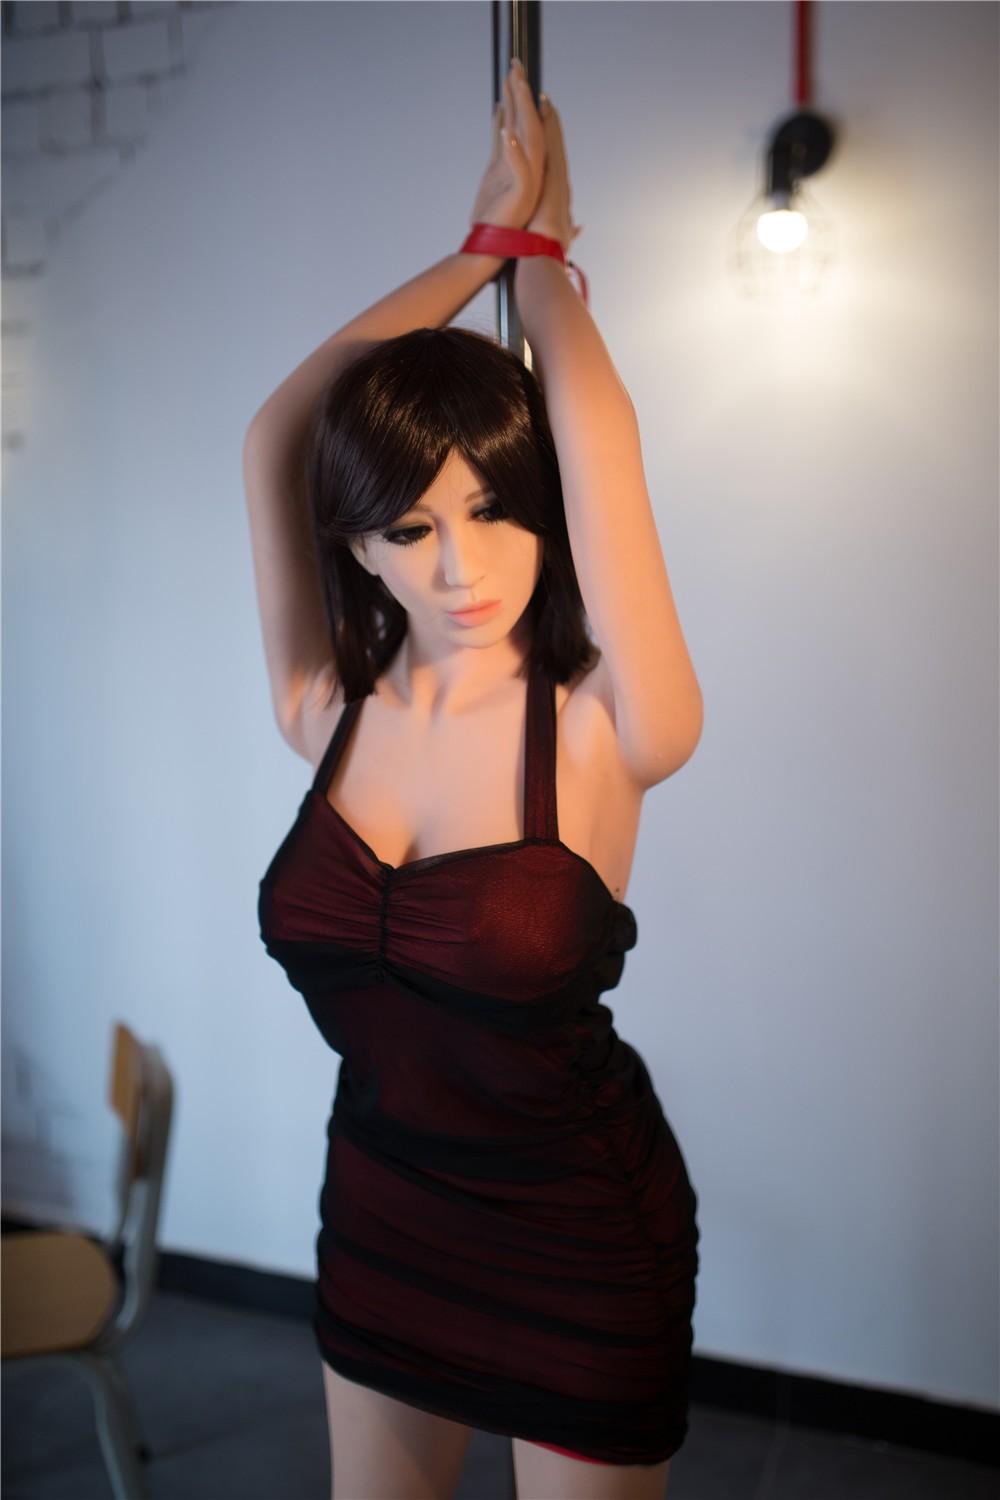 Sex Doll For Man Hot Young Girl Doll Having Sex With Sex Doll